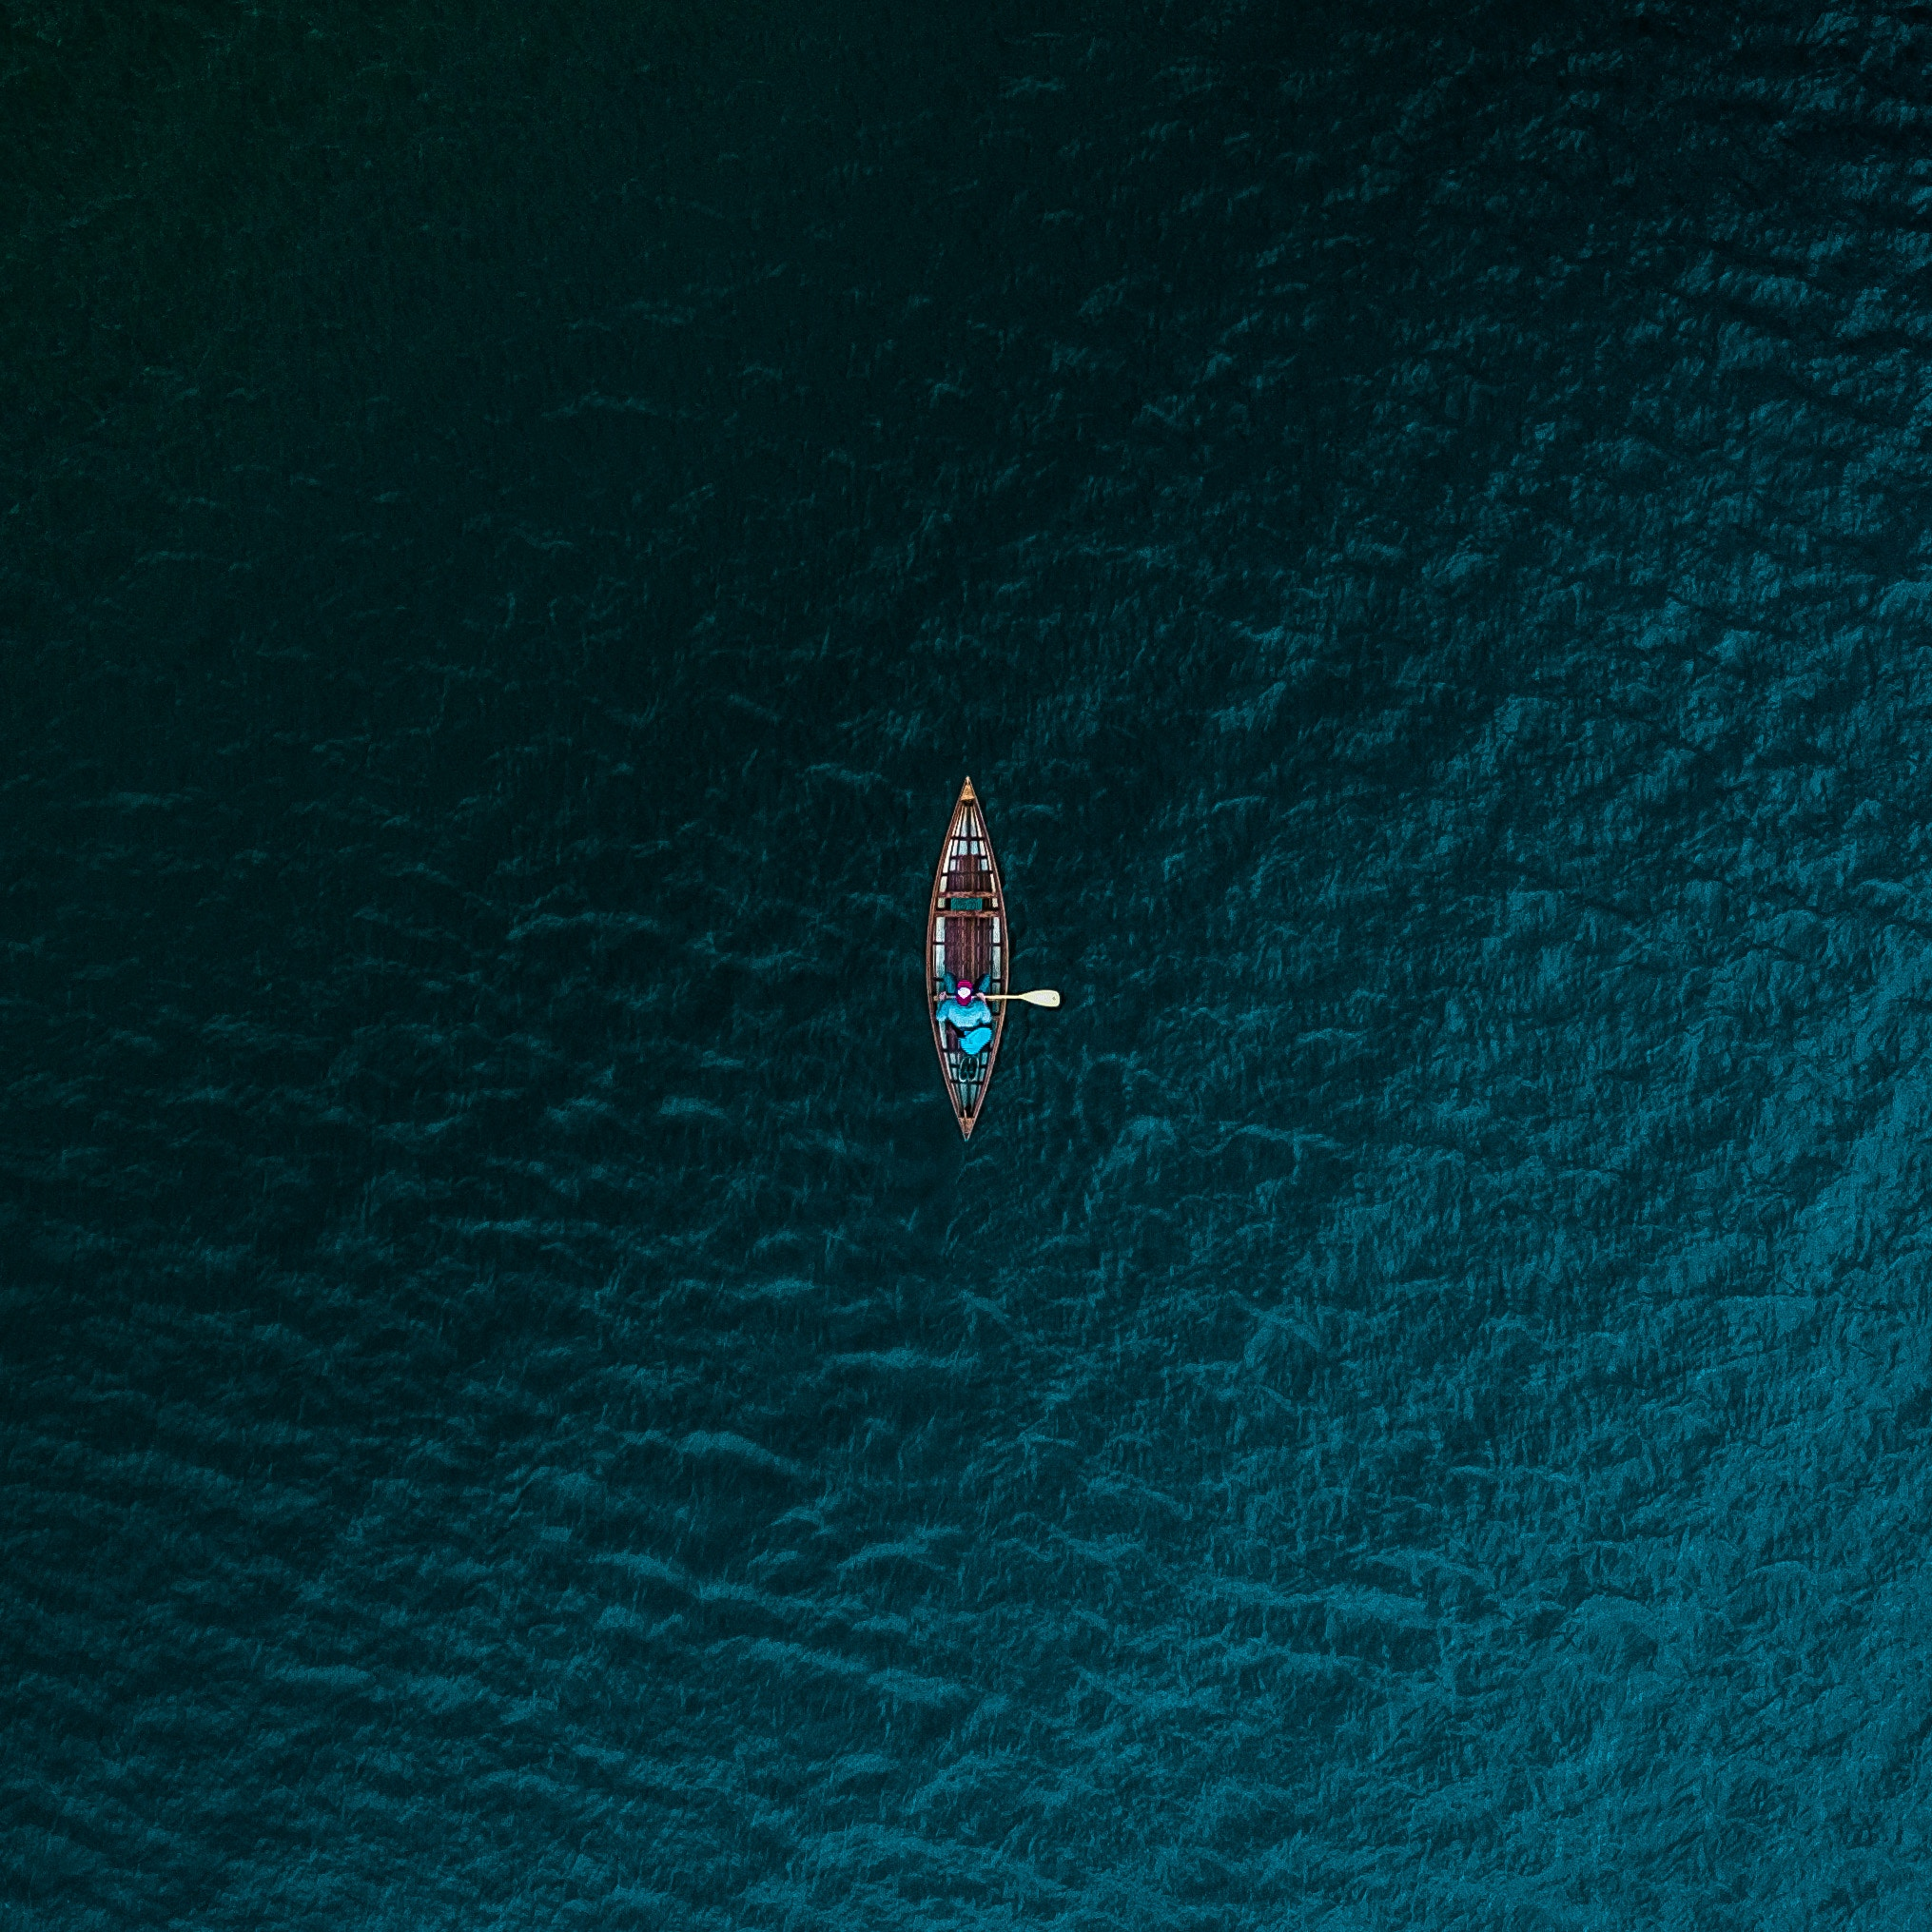 Photo by  Andrew Draper  on  Unsplash